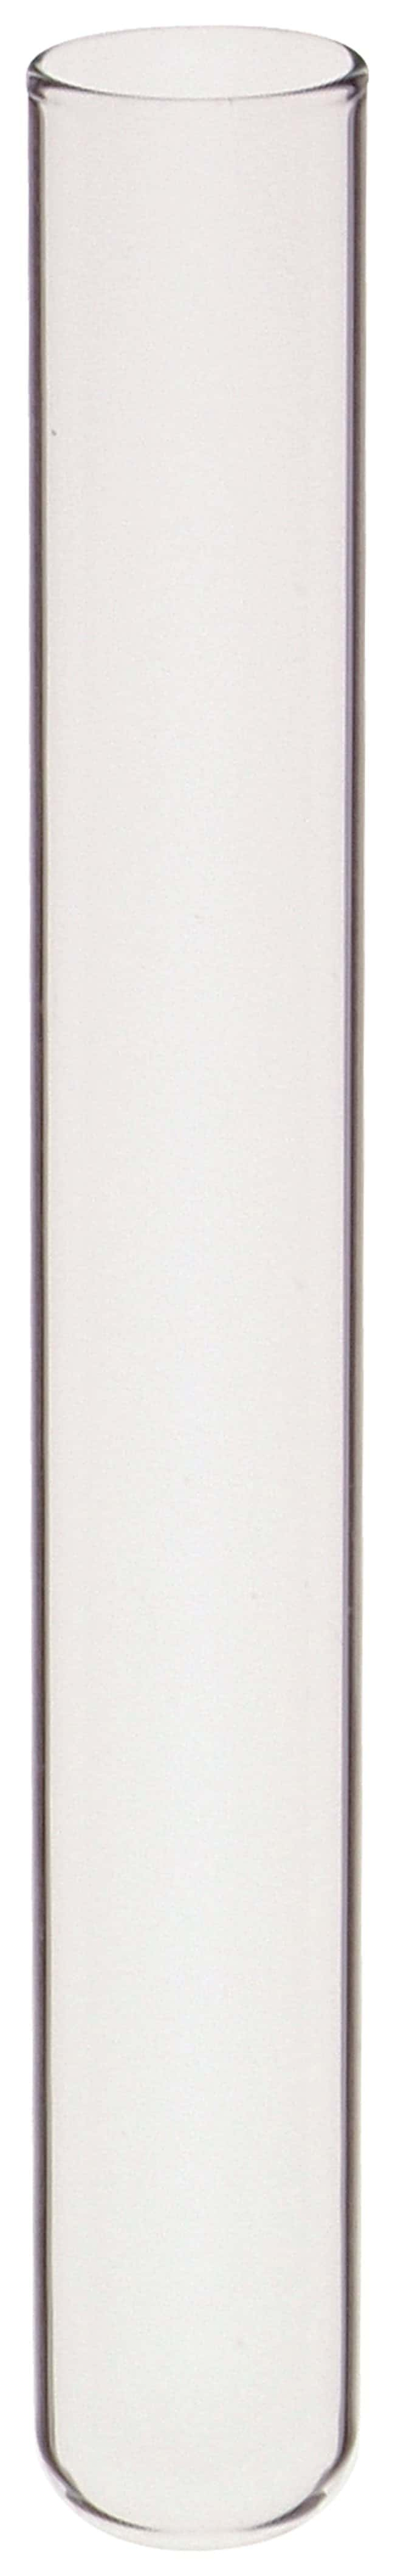 DWK Life Sciences Kimble™ Plain Disposable Borosilicate Glass Tubes O.D. x L: 16 x 125mm DWK Life Sciences Kimble™ Plain Disposable Borosilicate Glass Tubes